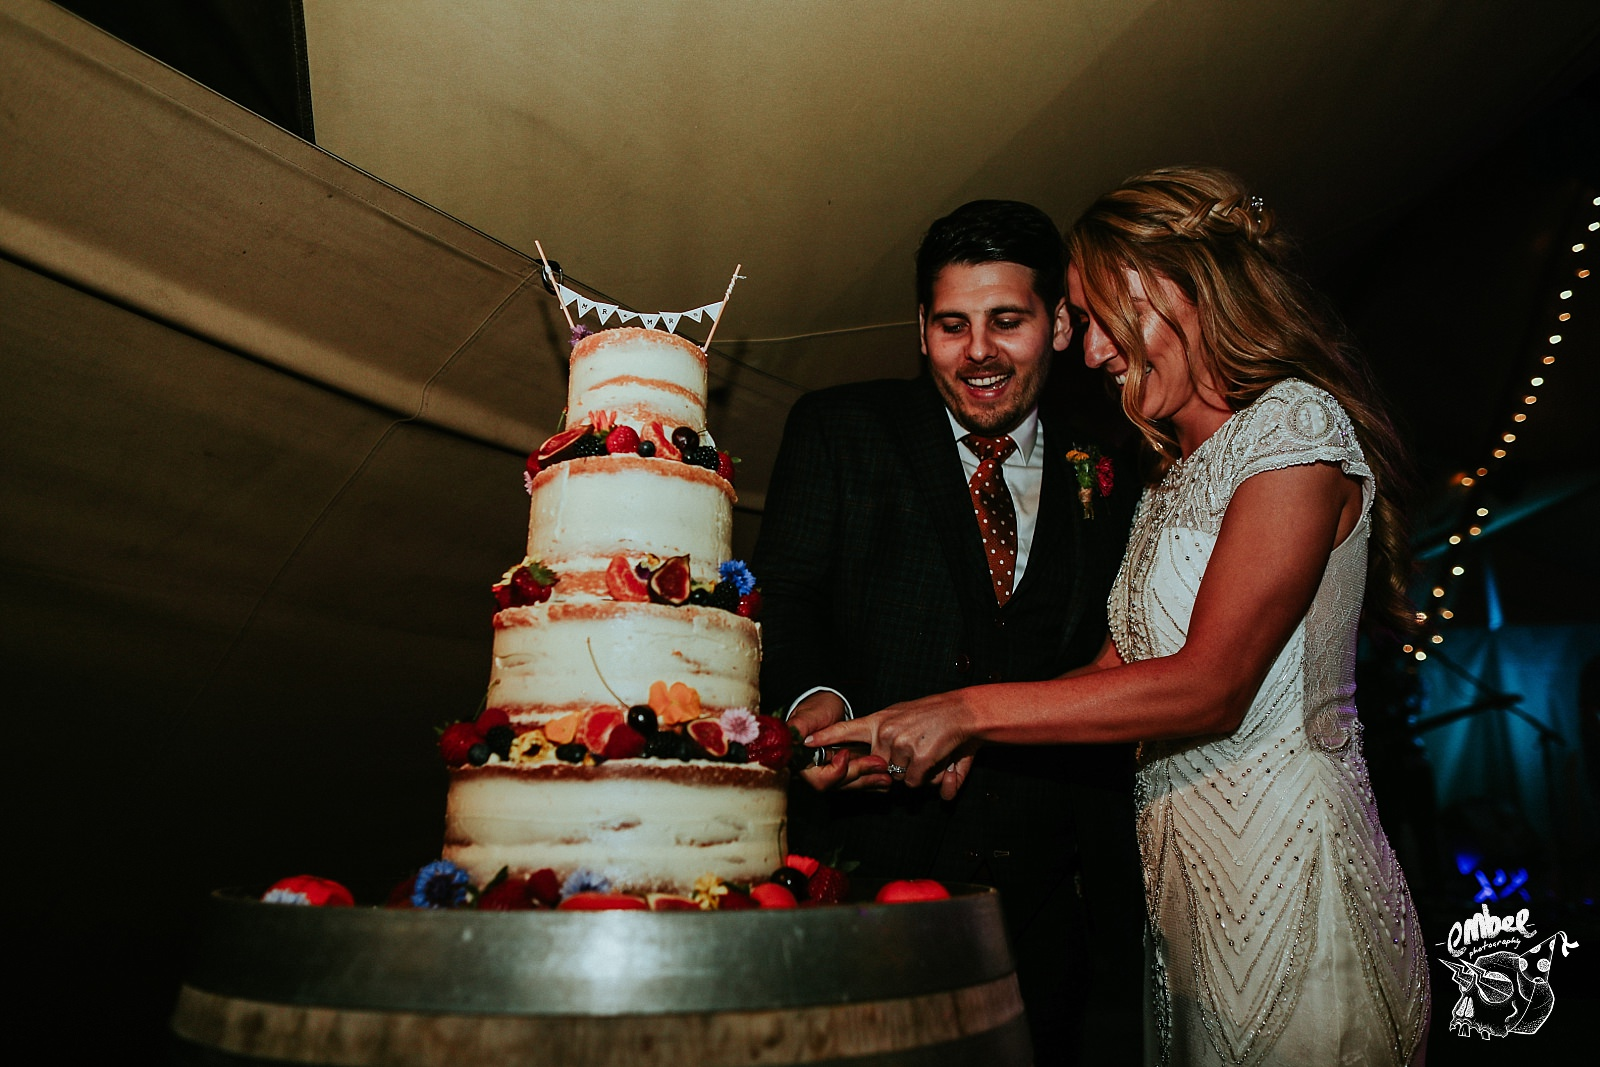 bride and groom cut cake at their wedding